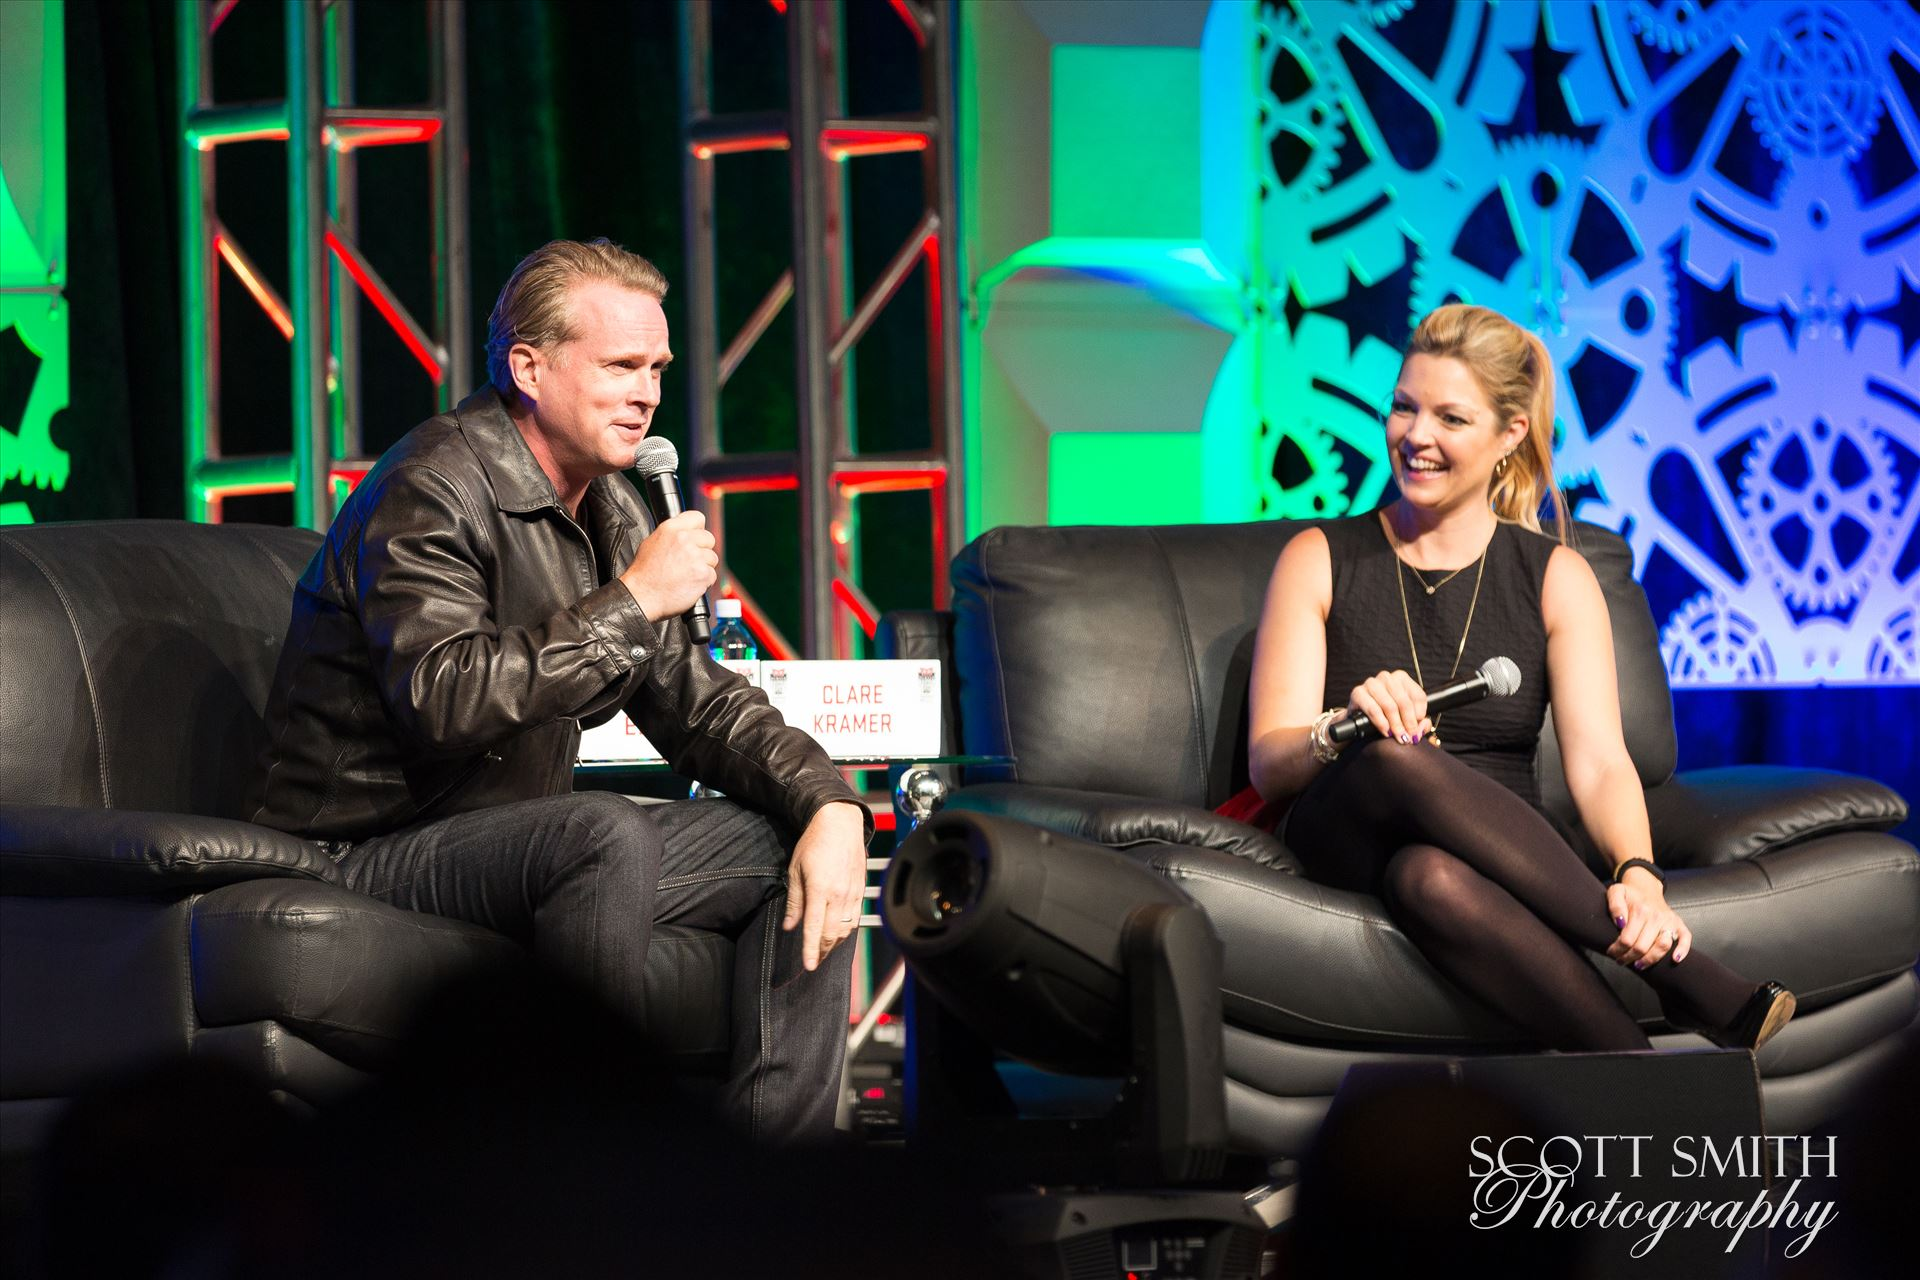 Denver Comic Con 2016 27 - Denver Comic Con 2016 at the Colorado Convention Center. Clare Kramer and Cary Elwes. by D Scott Smith